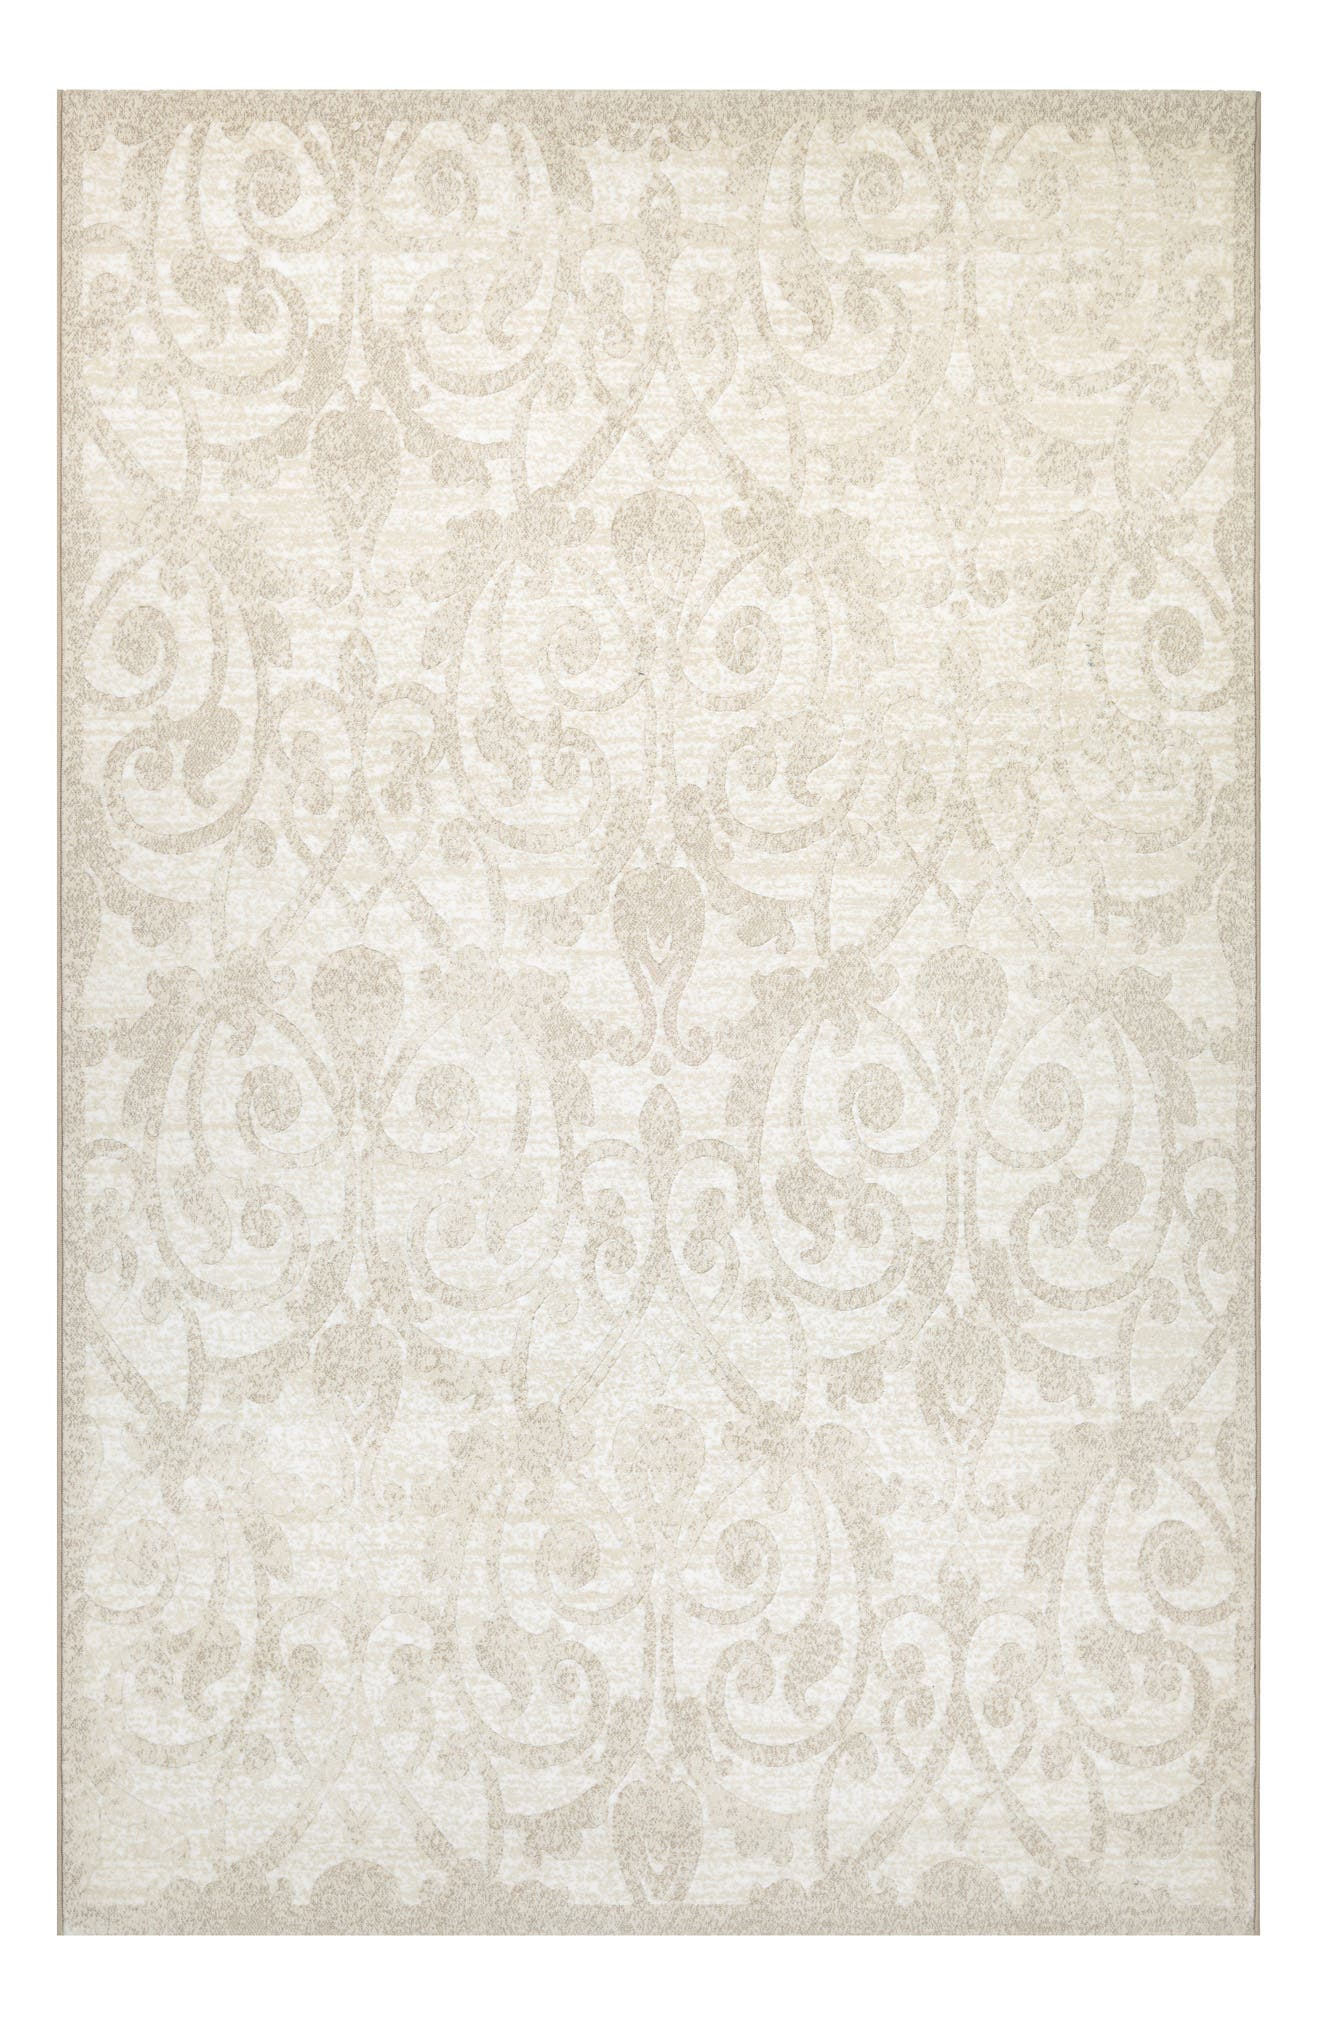 Marina Cannes Area Rug,                             Main thumbnail 1, color,                             250